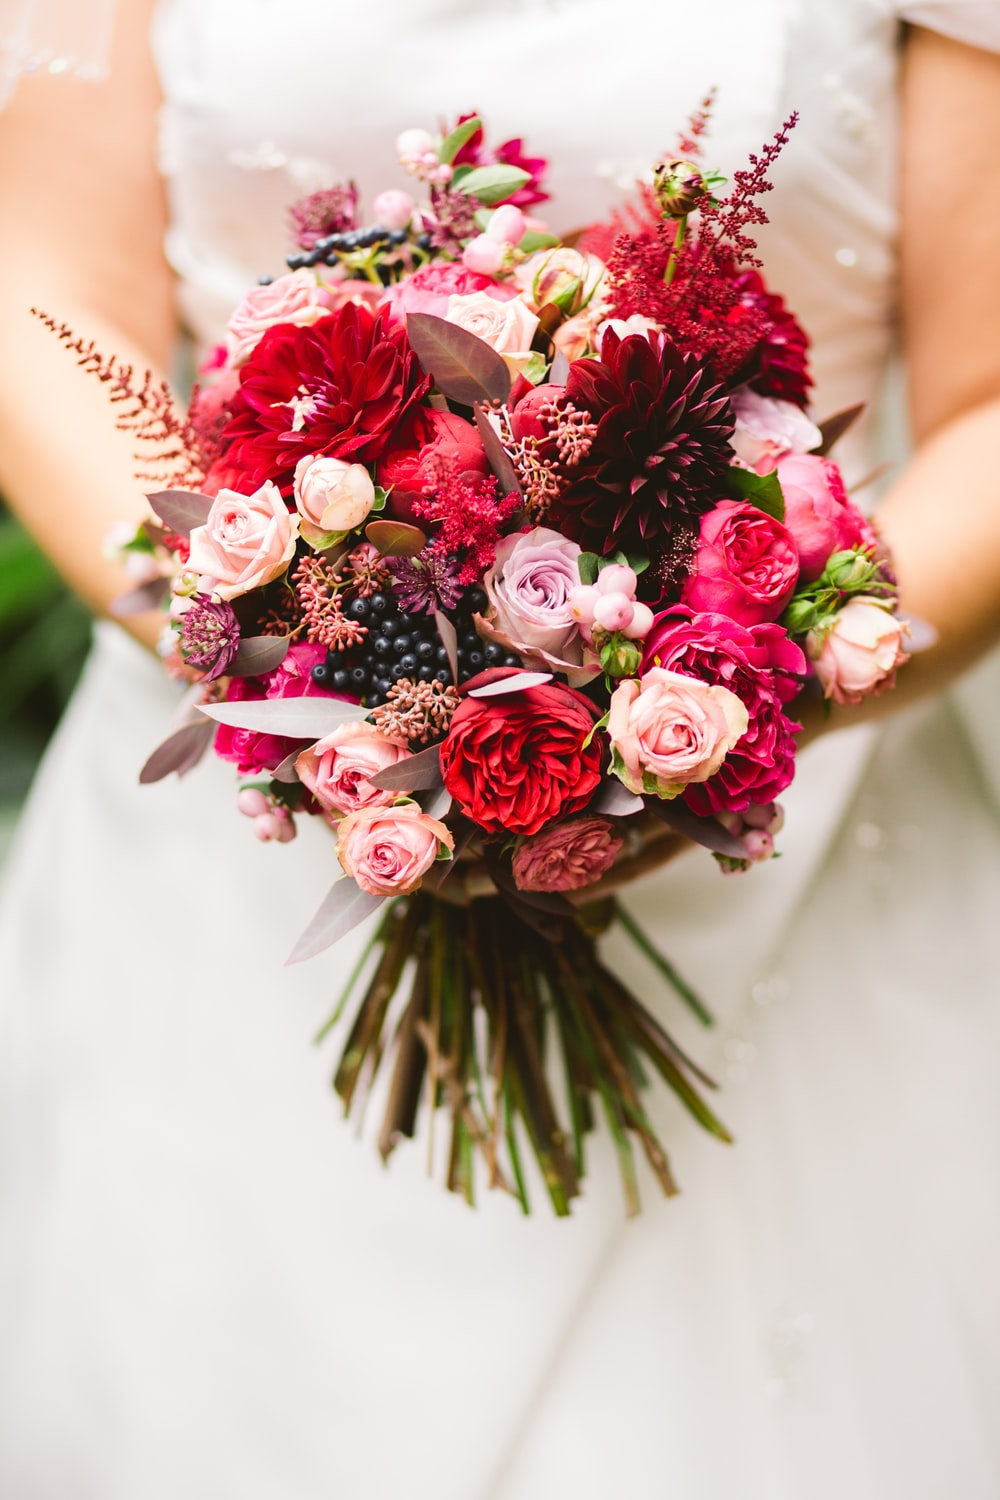 Wedding bouquet pictures download free images on unsplash bride holding flower bouquet izmirmasajfo